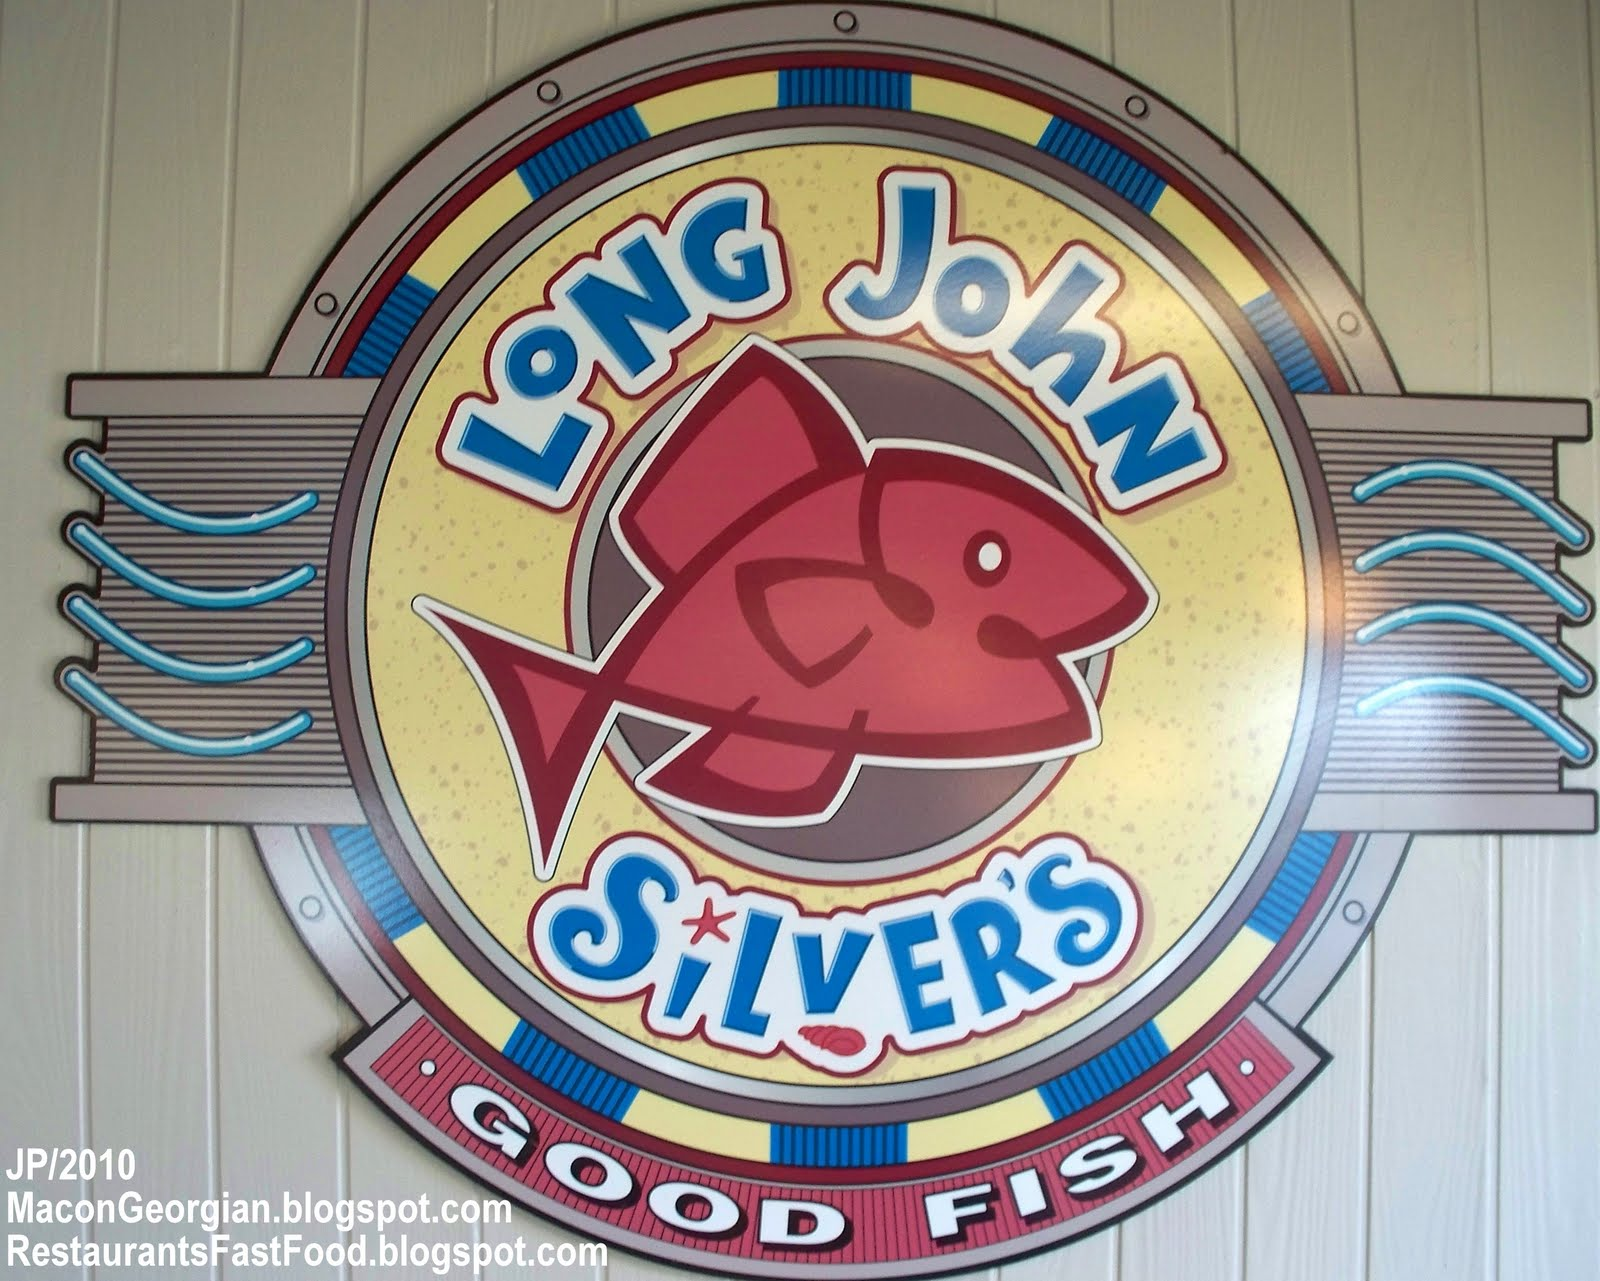 Long John Silver S Cod Thick Cut Platter Sign Seafood Fast Food Restaurant Fish Dinner Meal Fries Slaw